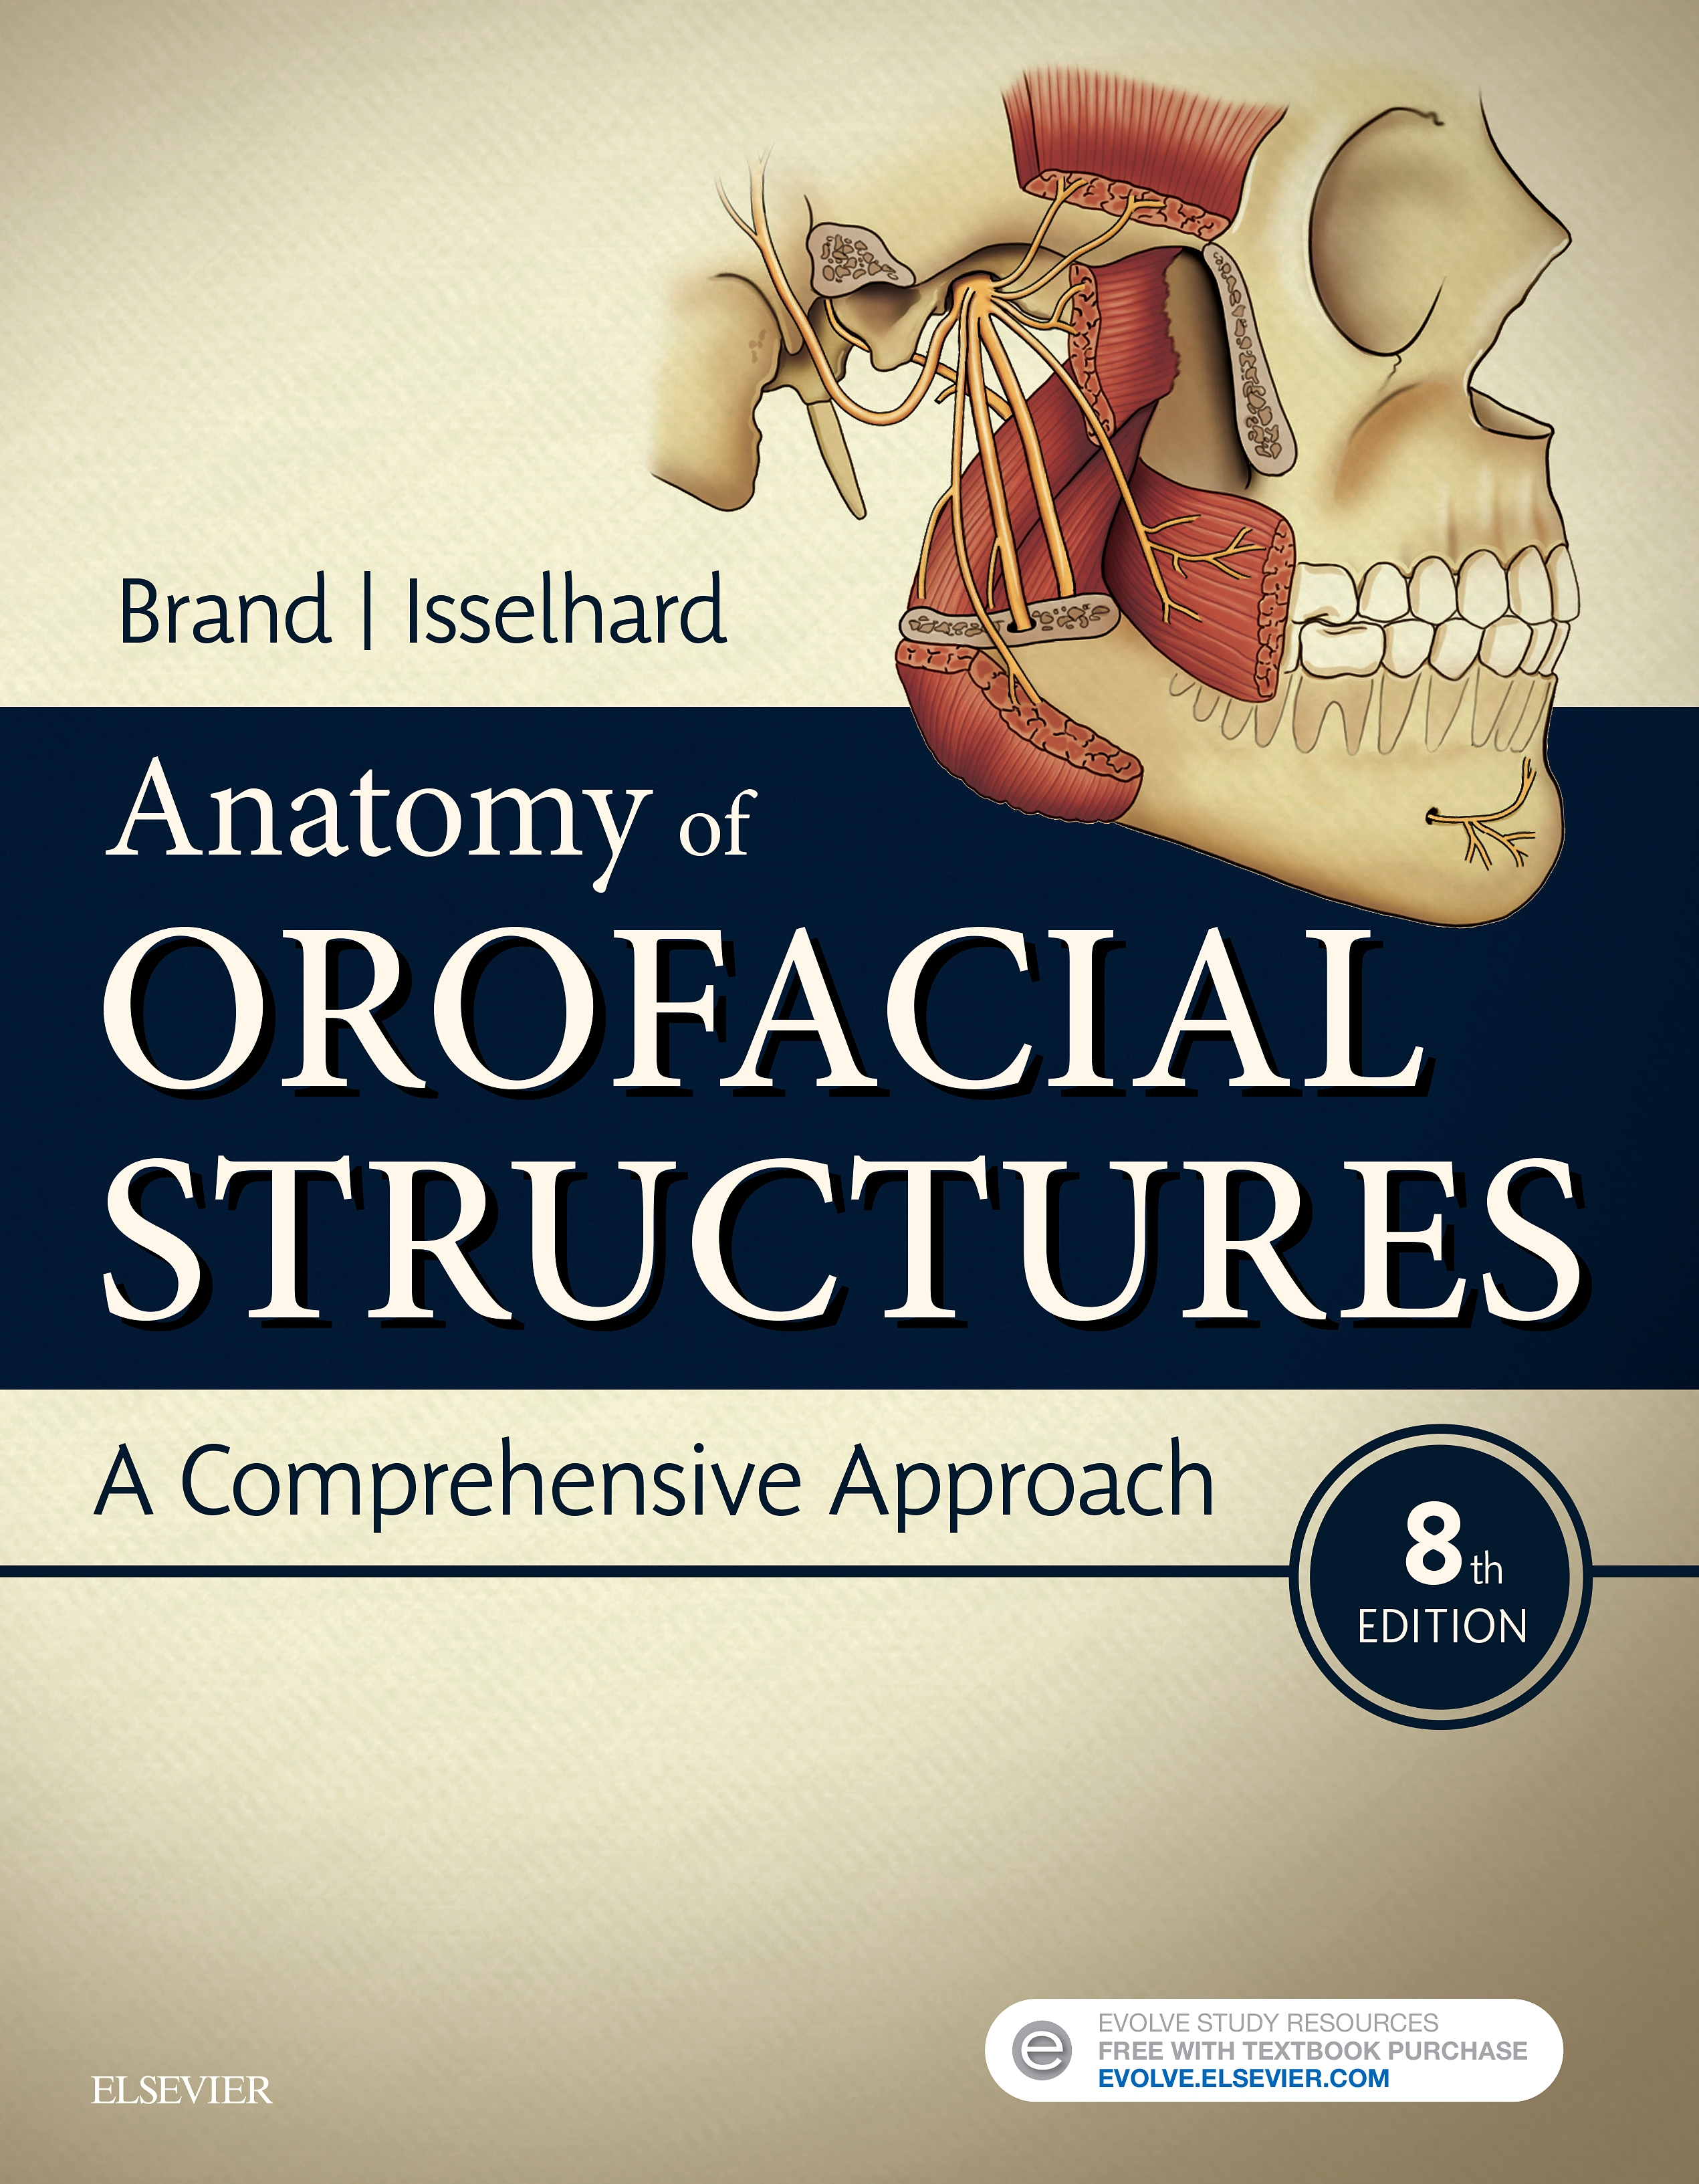 Evolve Resources for Anatomy of Orofacial Structures, 8th Edition